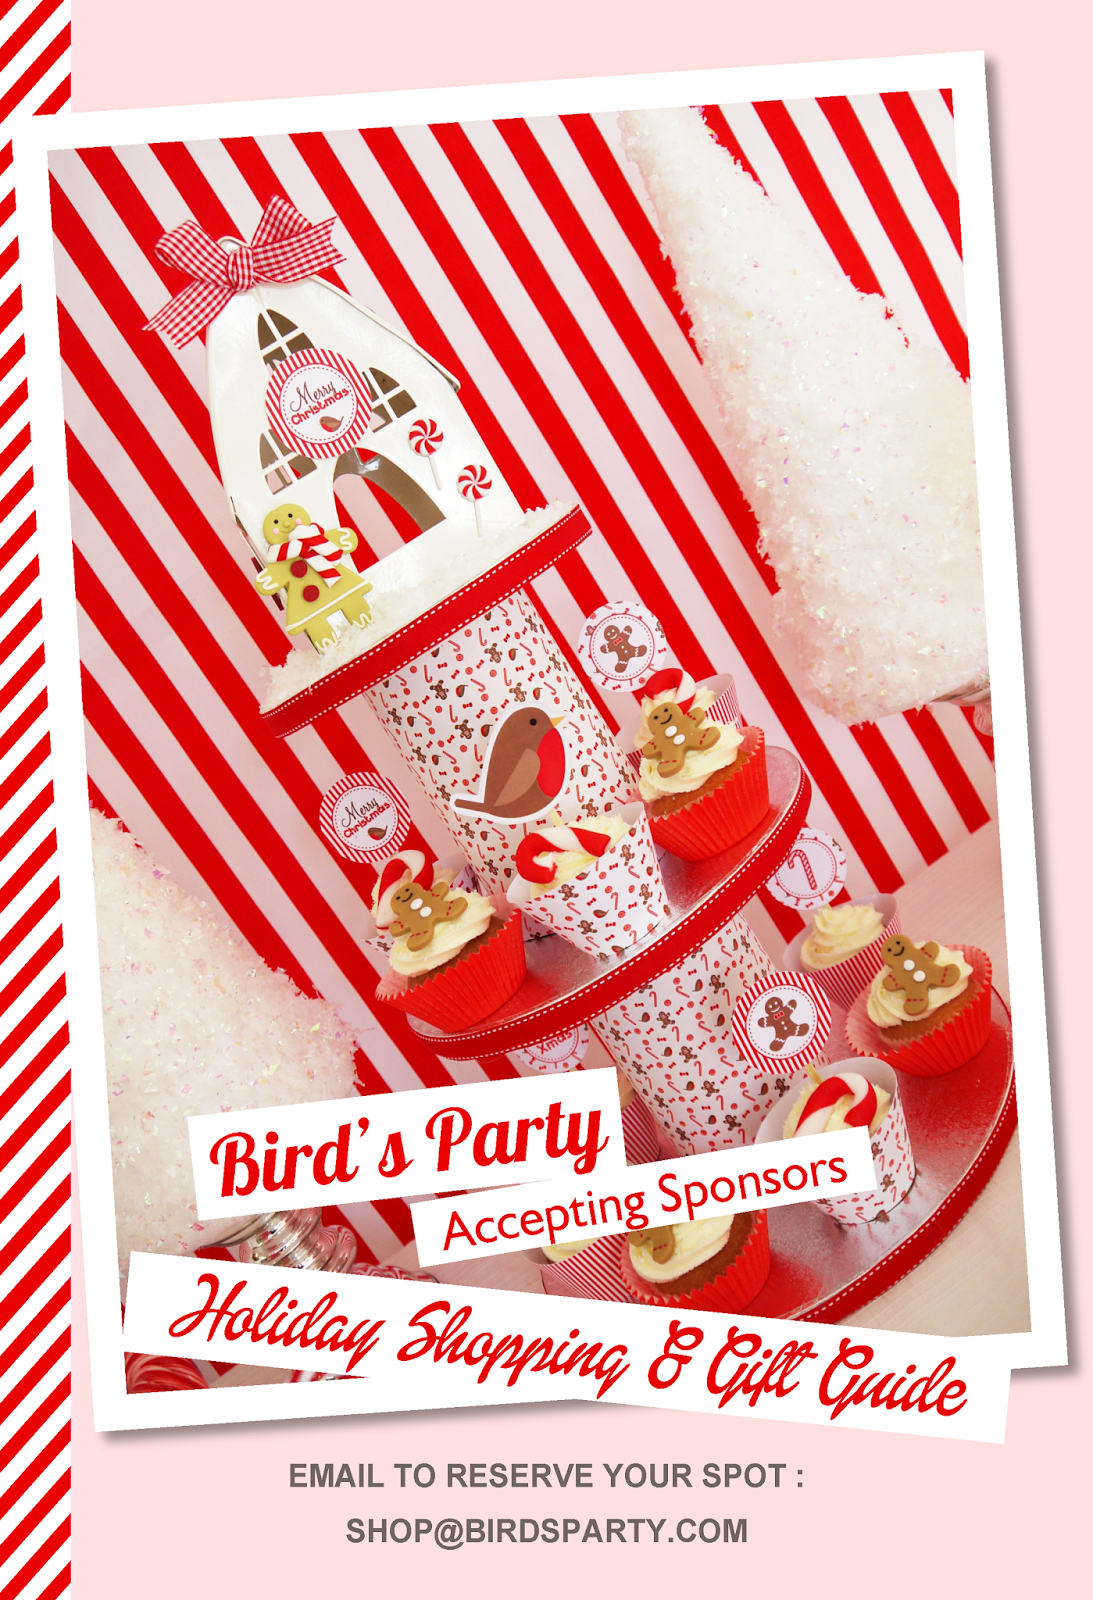 Bird's Party Holiday Gift Guide 2014  - BirdsParty.com